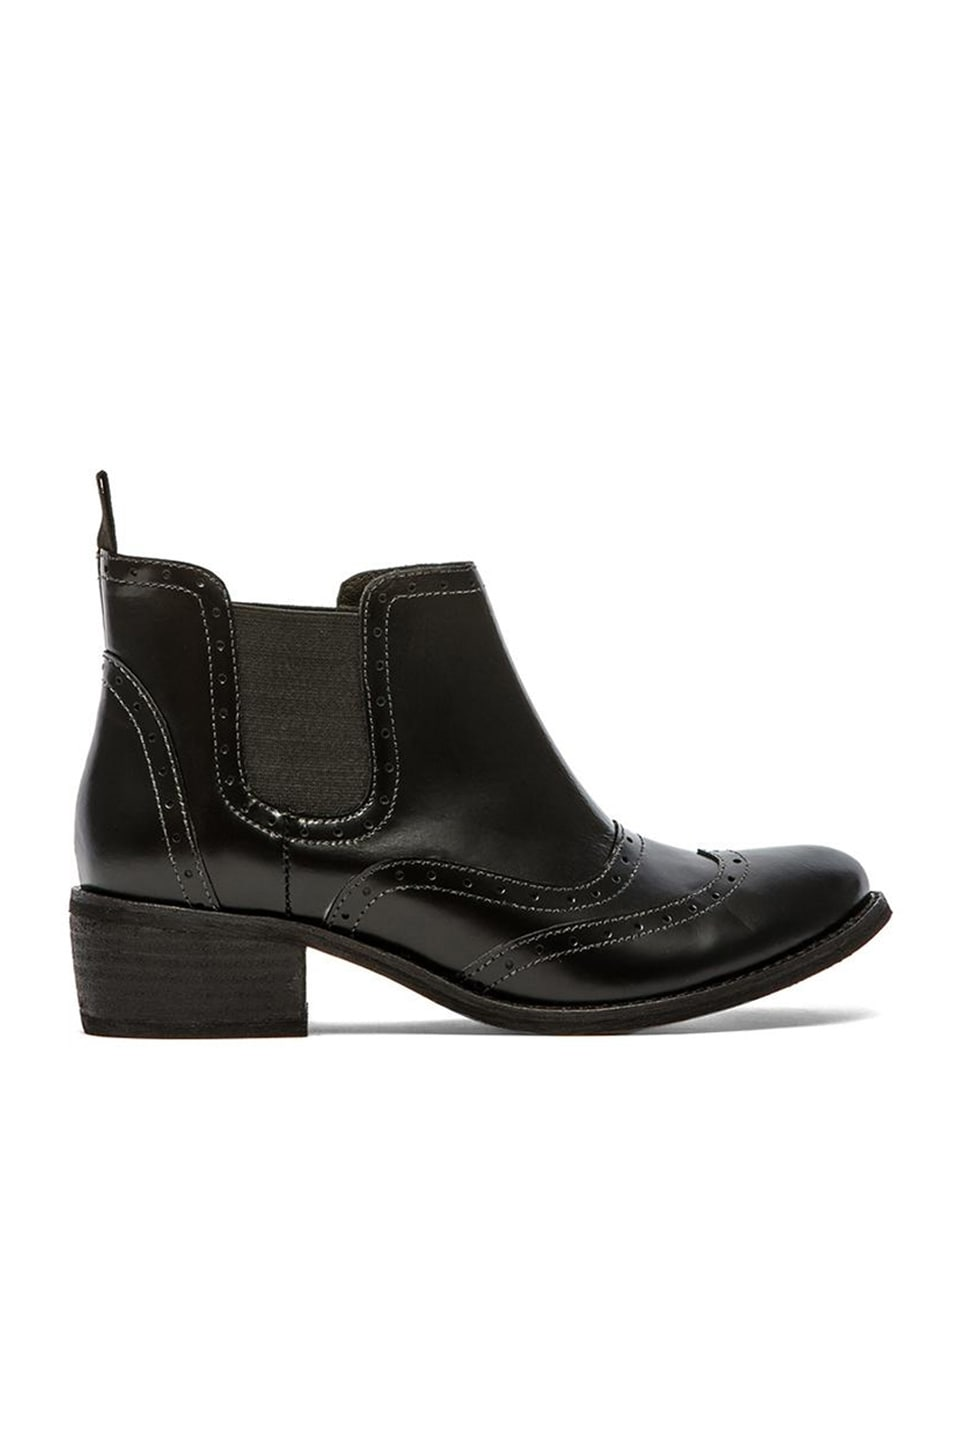 Matisse Rowan Bootie in Black